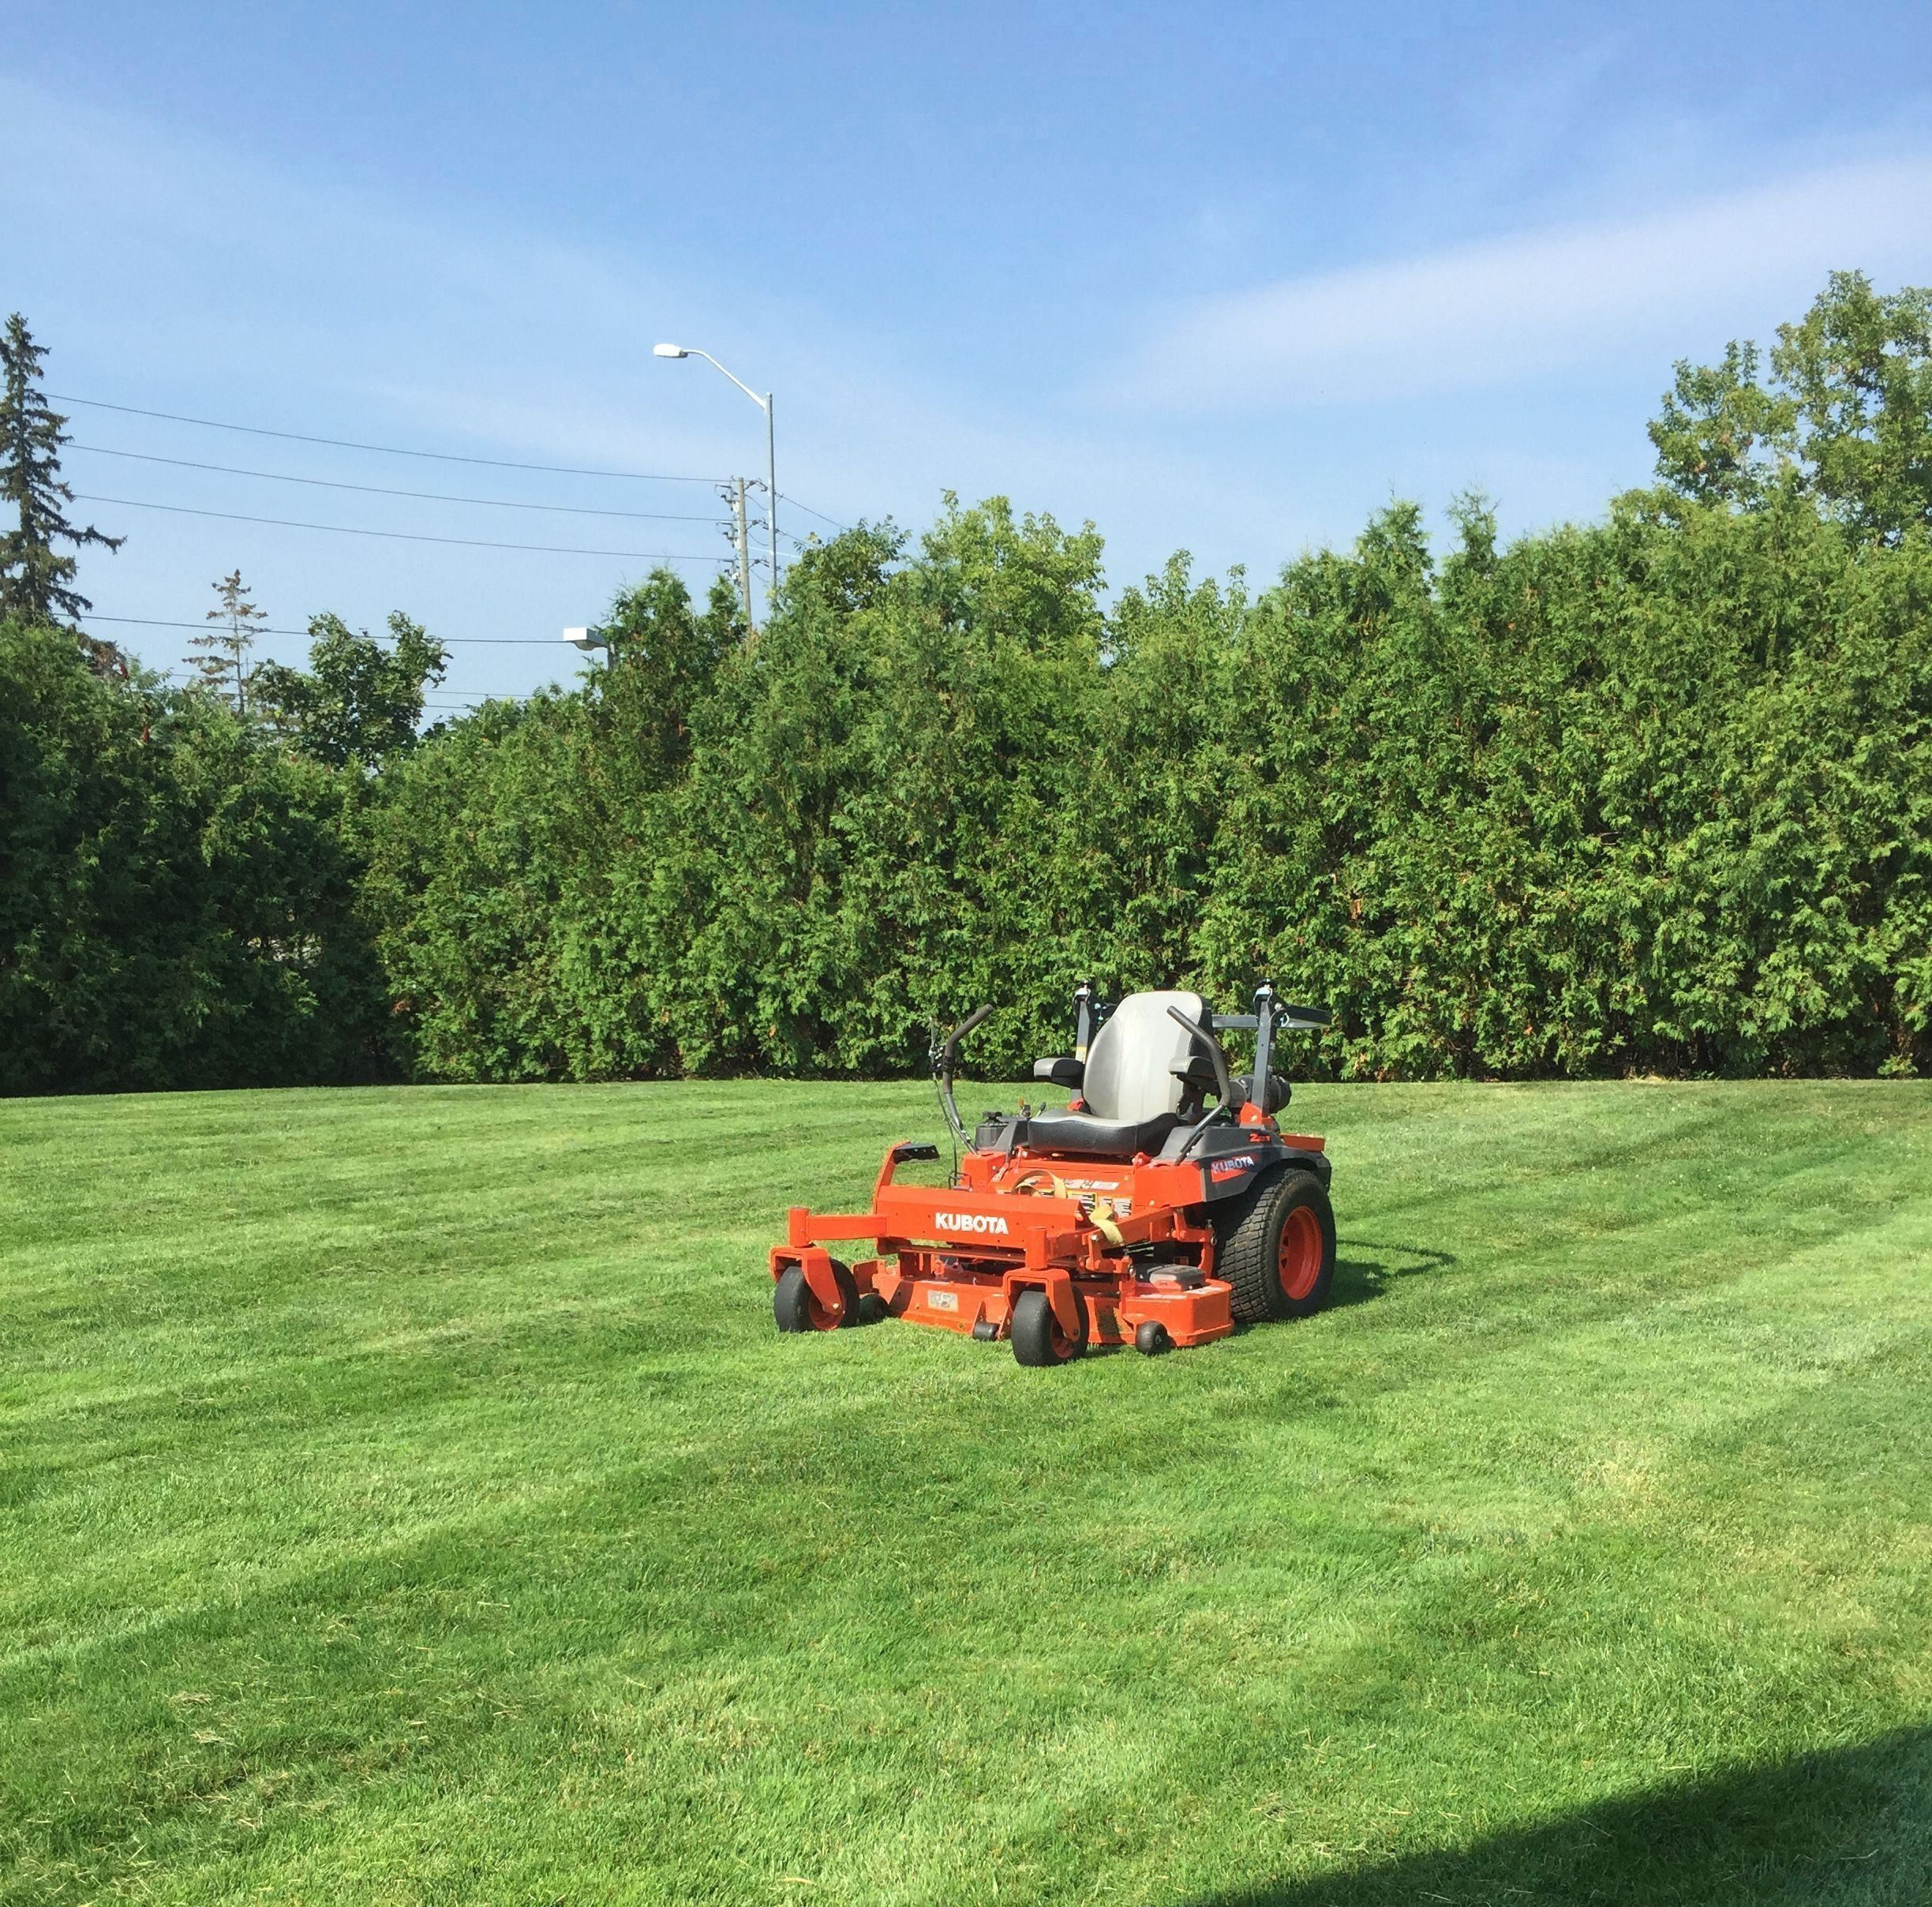 Common Mistakes Made In Lawn Care Landscaping near me